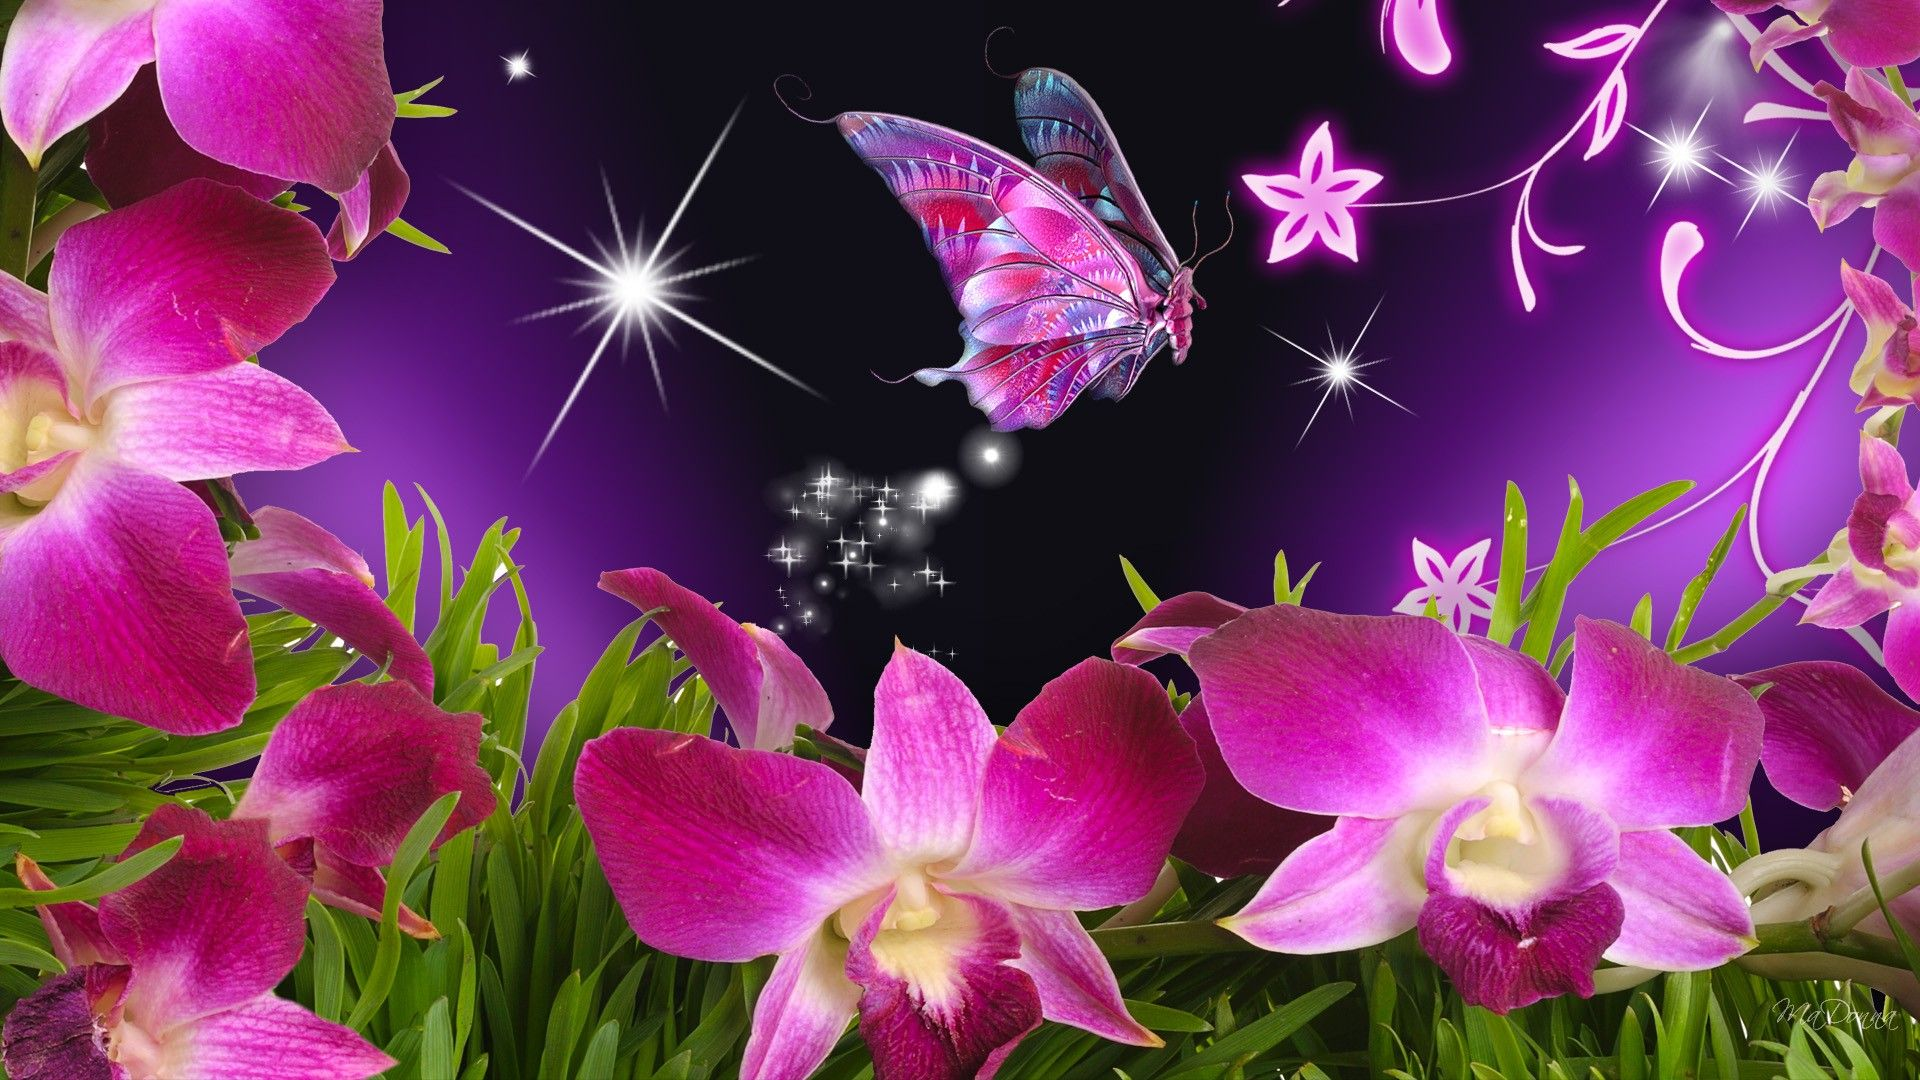 butterflies and flowers butterfly flowers orchid purple stars